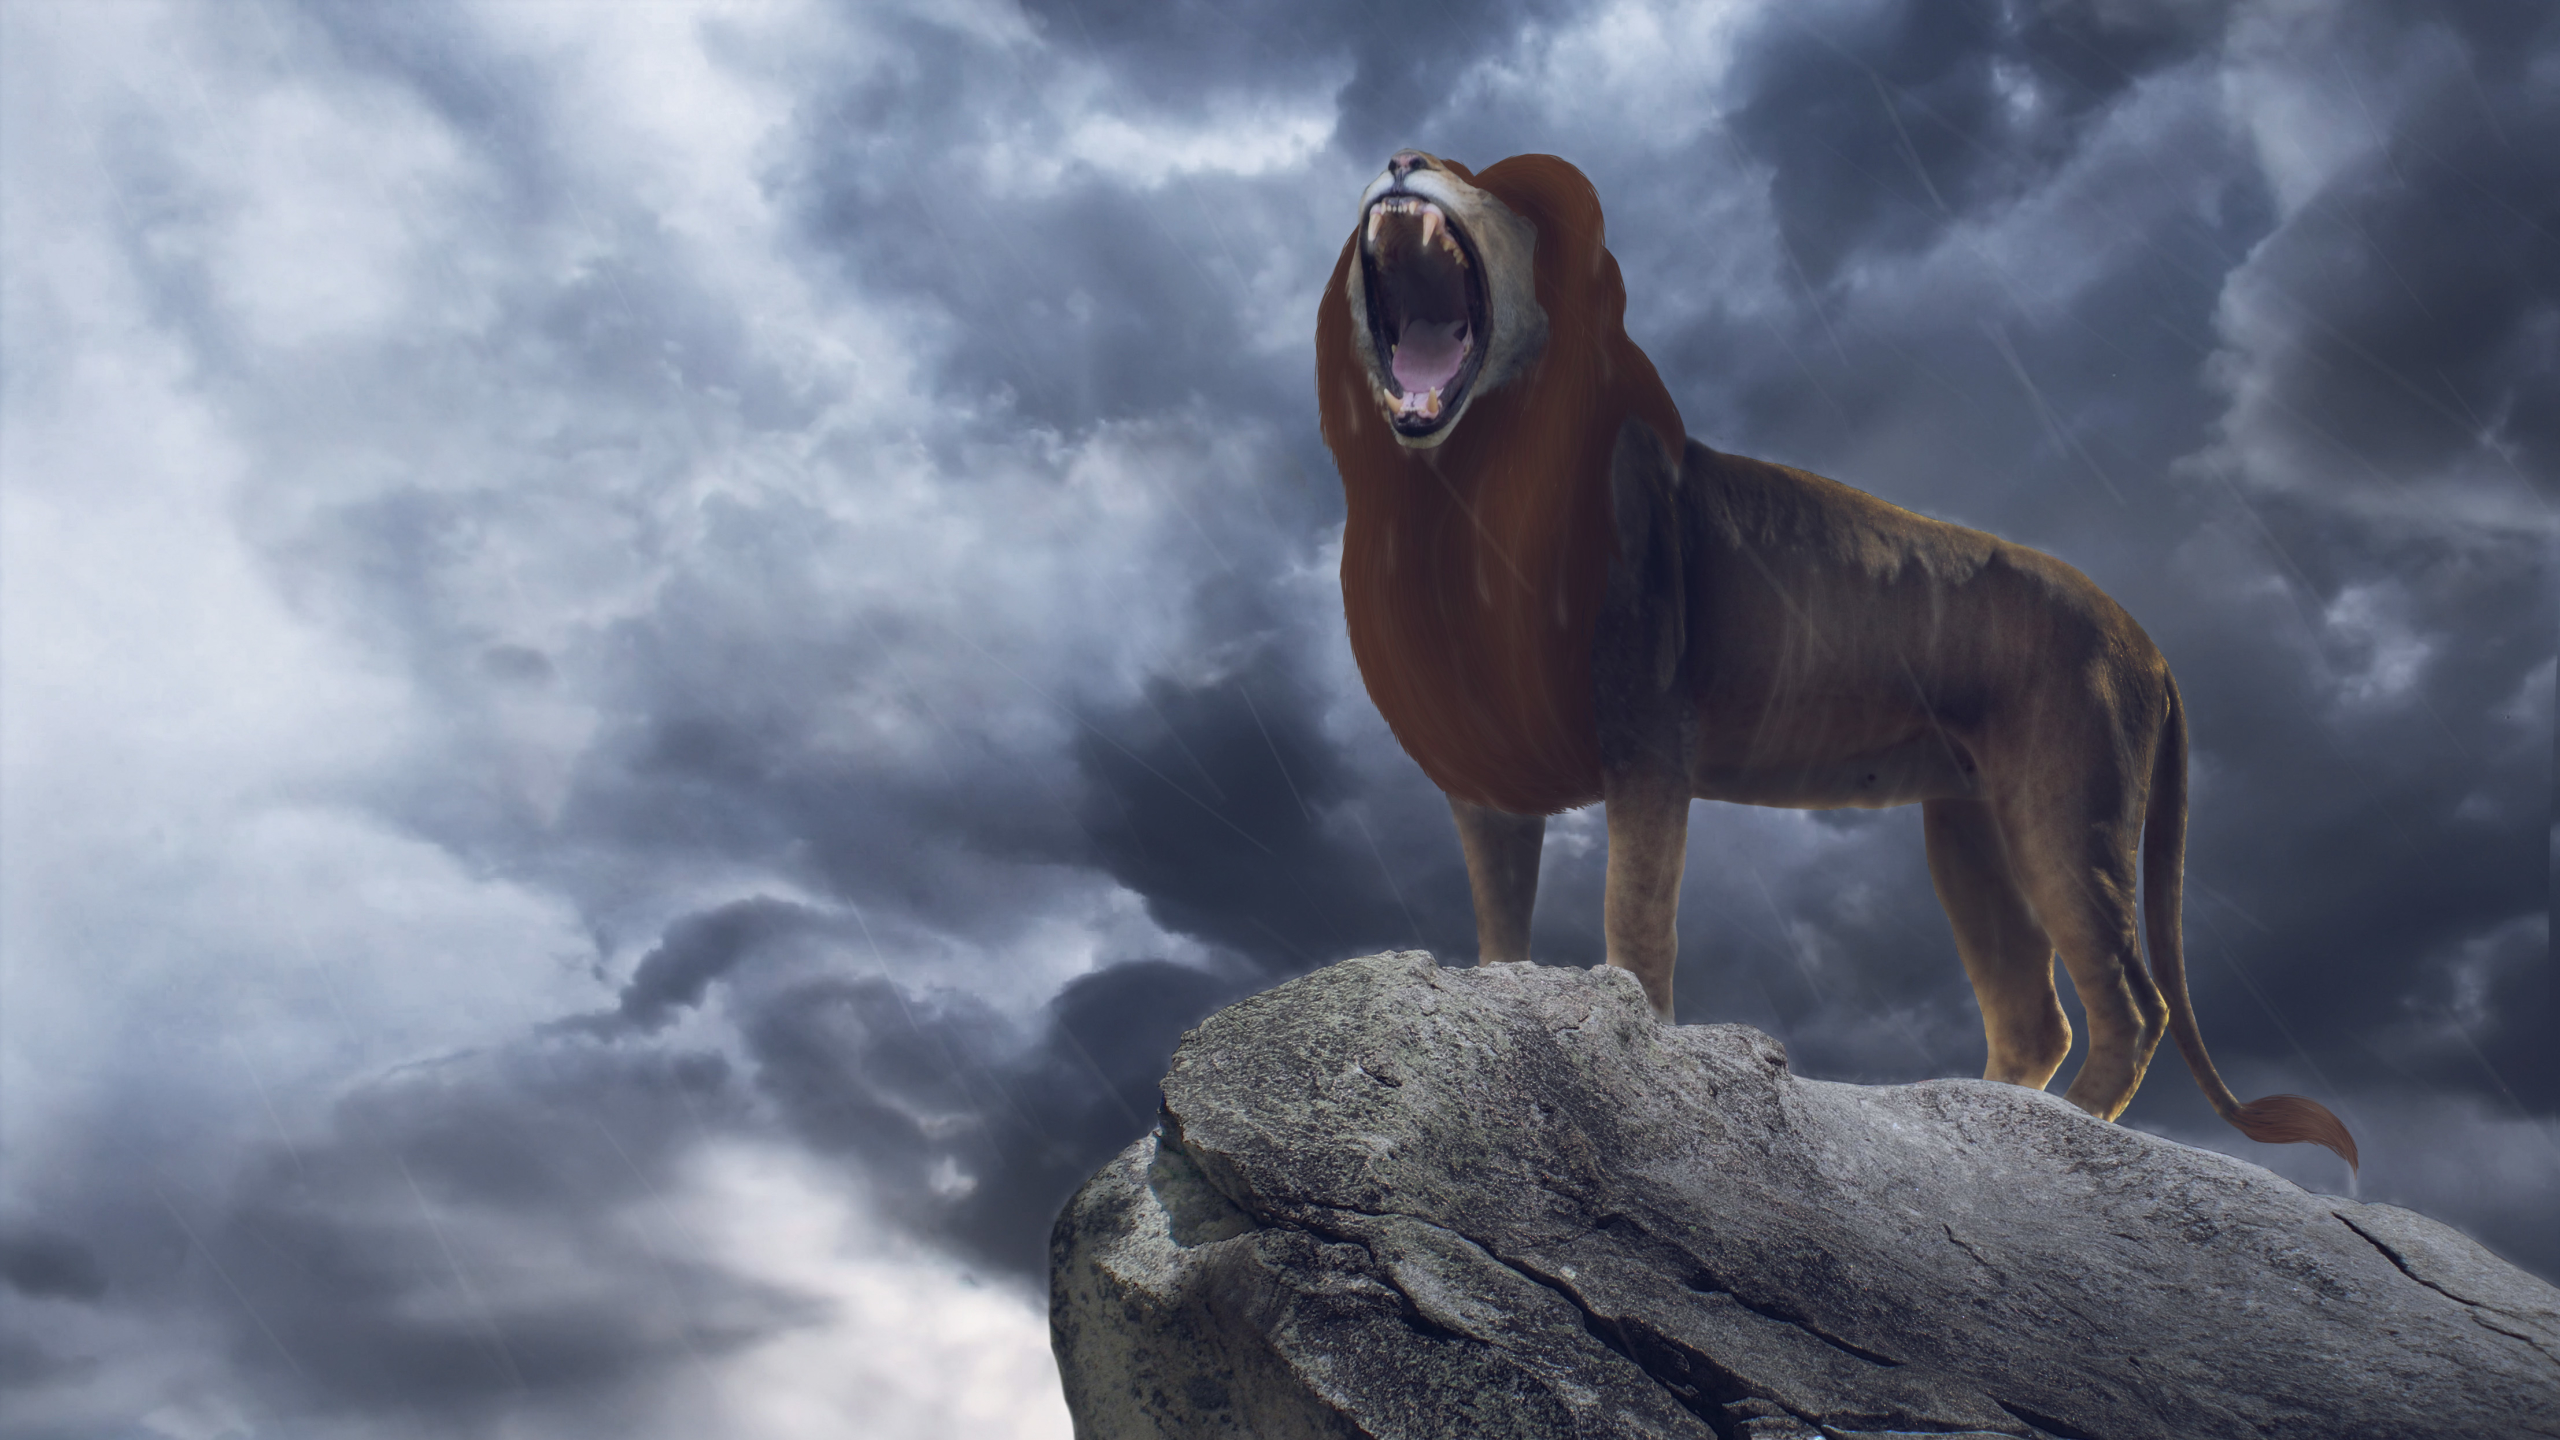 2560x1440 Simba In The Lion King 2019 Movie 1440p Resolution